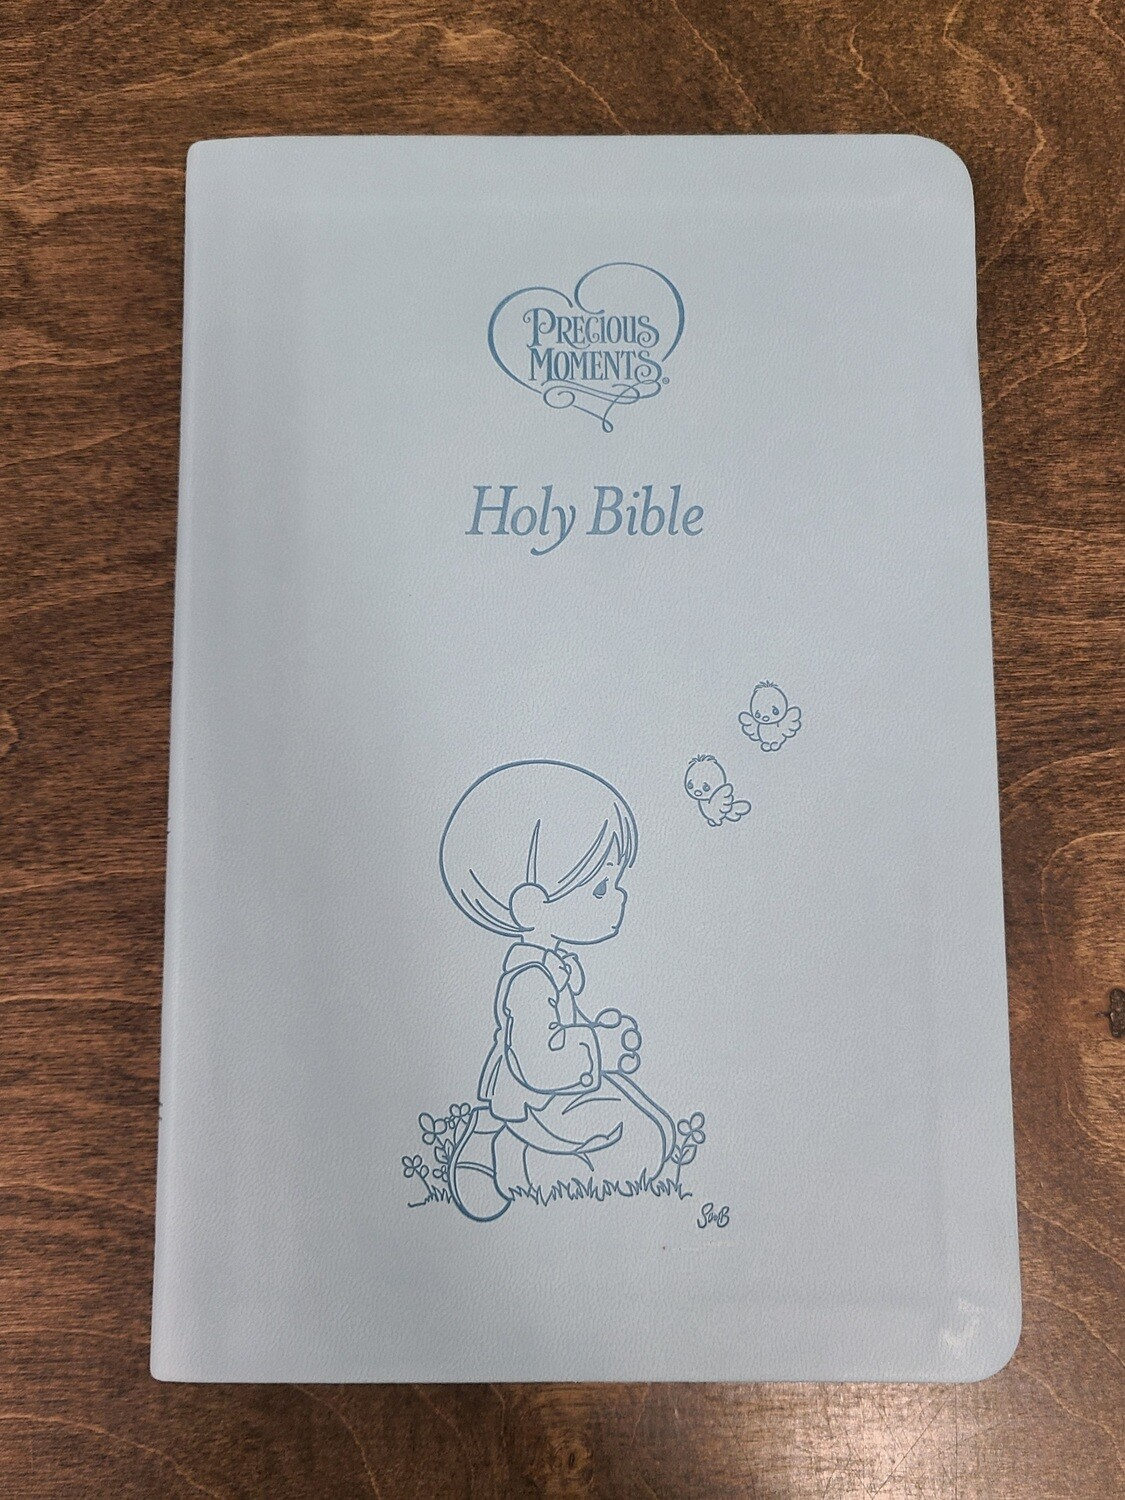 ICB Precious Moments Children's Holy Bible - Blue Leather